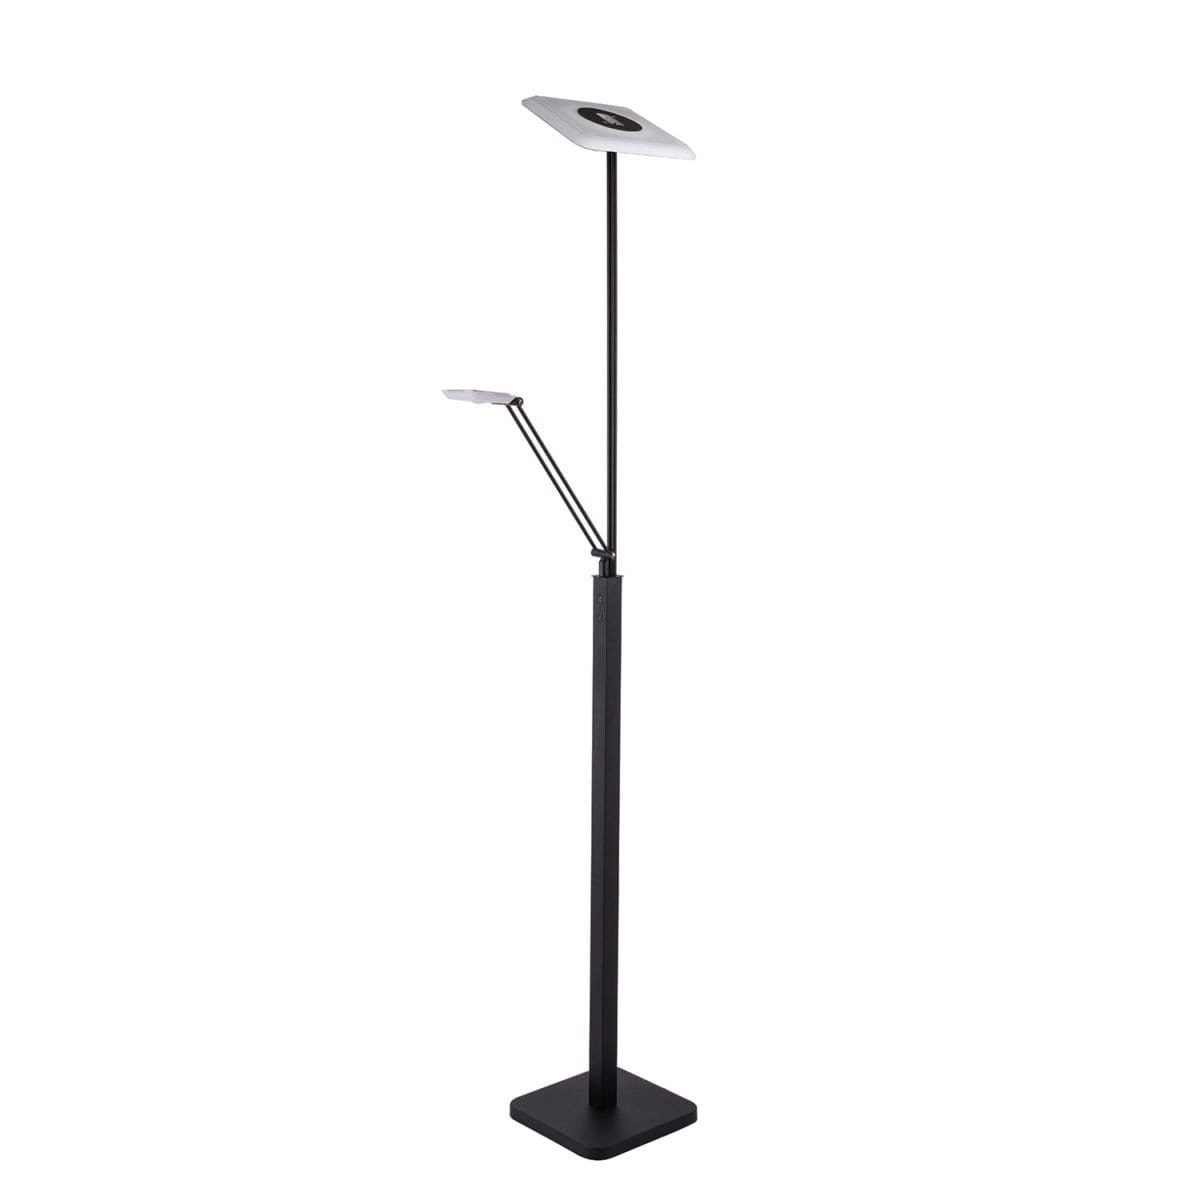 148 FL5020 BLK LED Torchiere With Reading Light Available in Black or Satin Nickle Regular Price $226.99 Sale Price $158.99